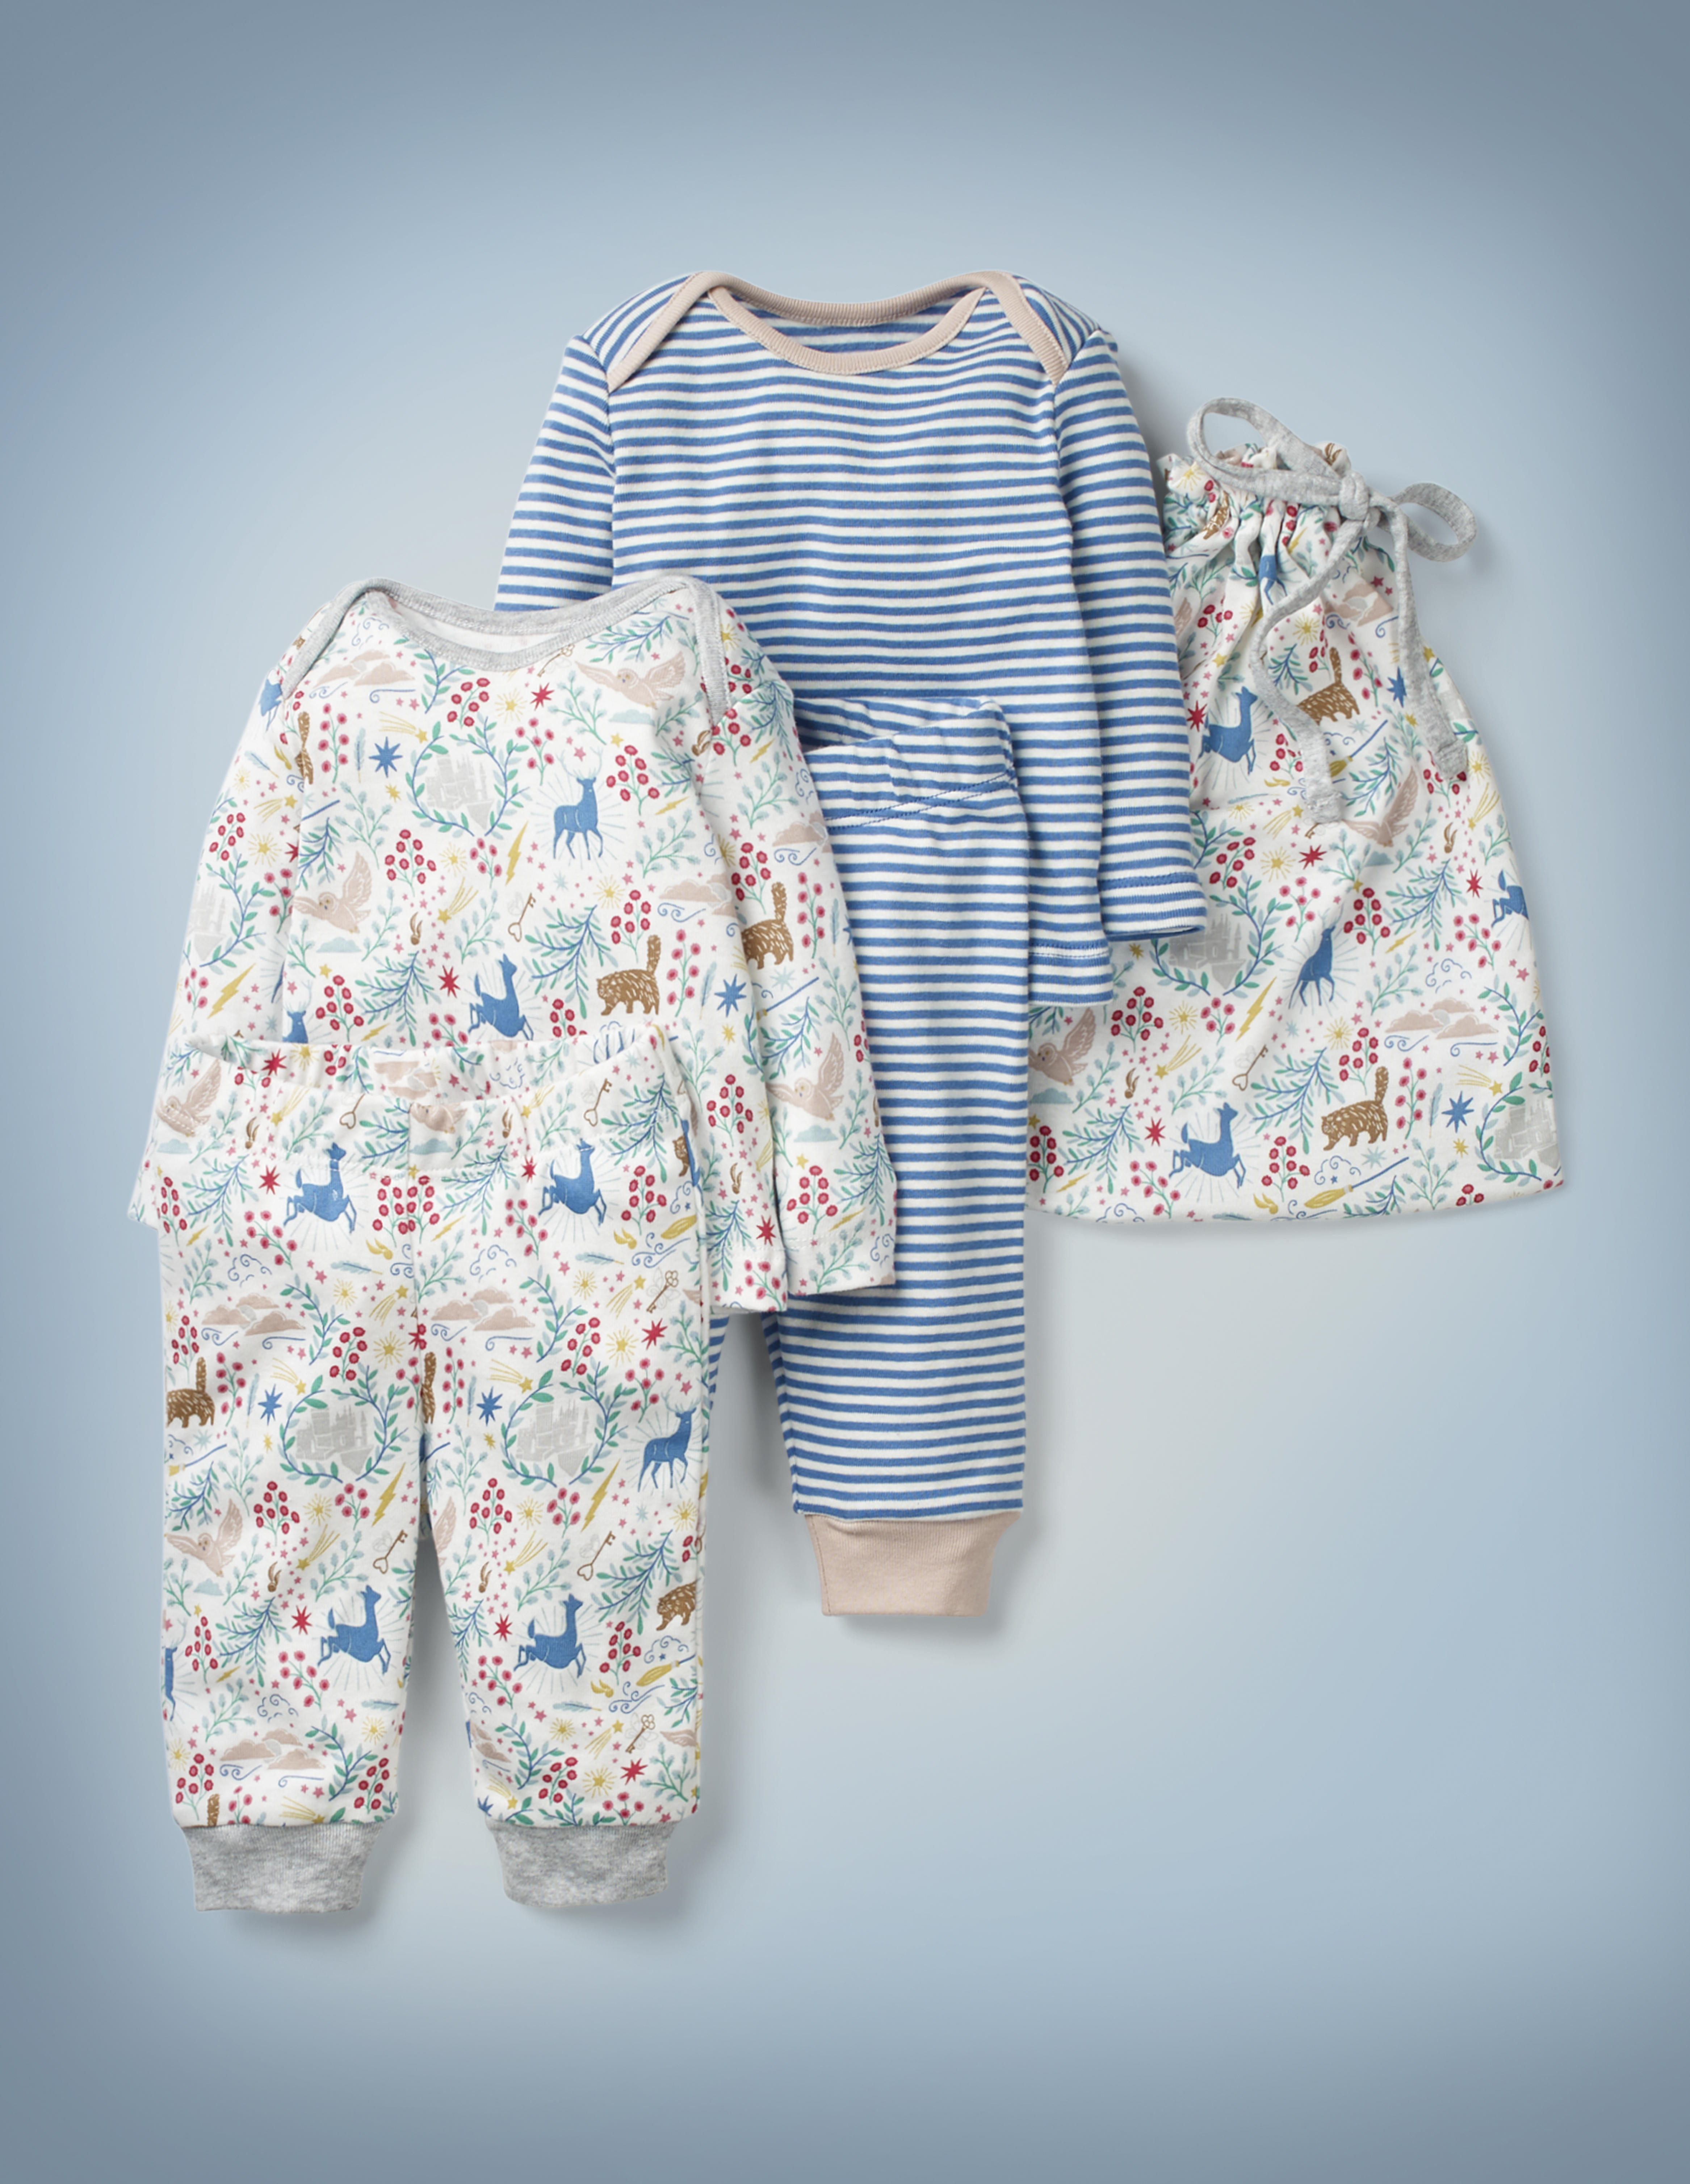 The Mini Boden Harry Potter Play Set, ivory, features two top-and-bottom play outfits – one with all-over blue-and-white stripes, one white with all-over images including Crookshanks, Hedwig, a stag, and a doe – and a drawstring bag in the latter design. It retails between £35 and £38.